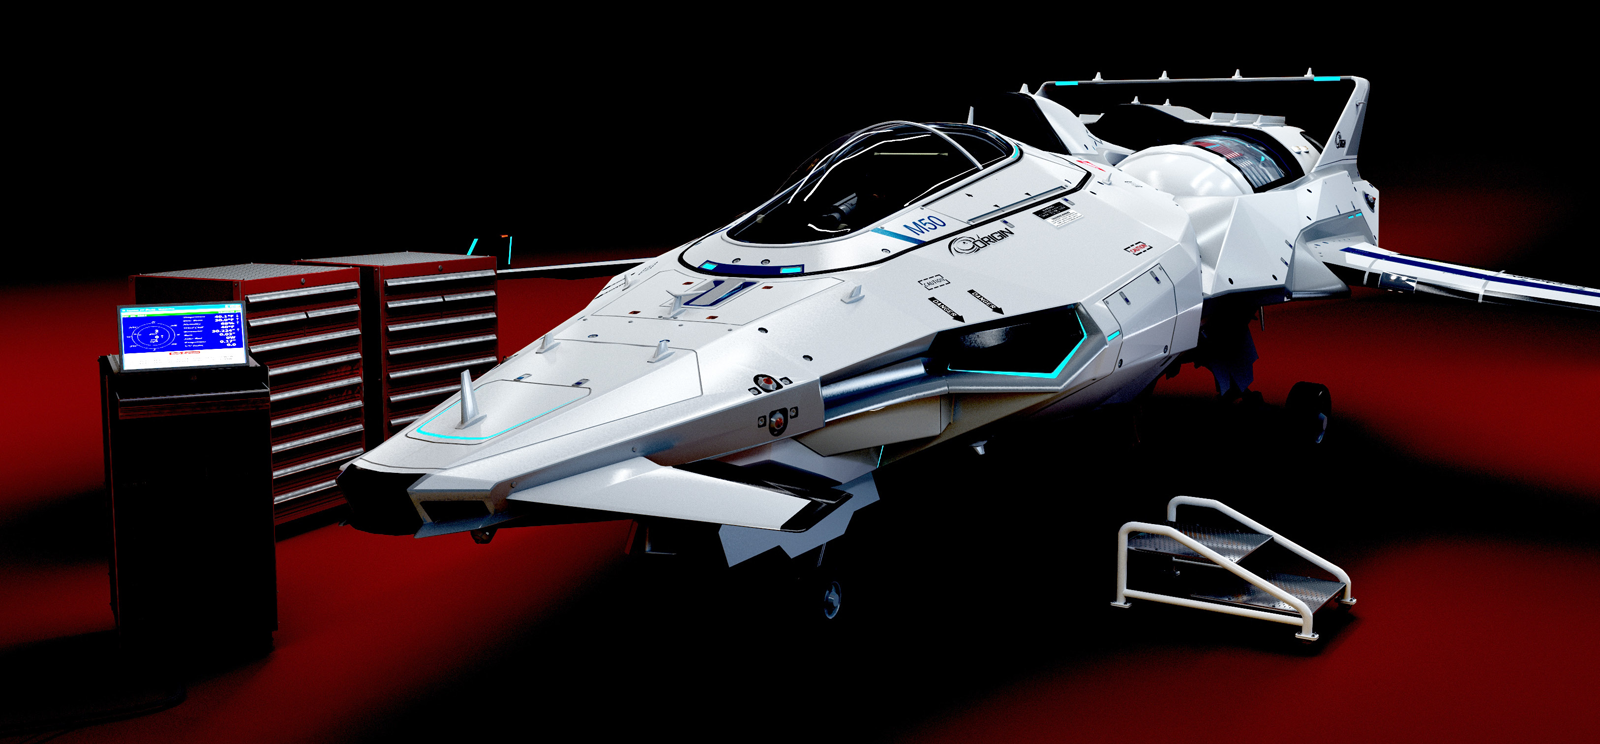 1485 Star Citizen M50 Model Preview on Latest Write Up Form 2